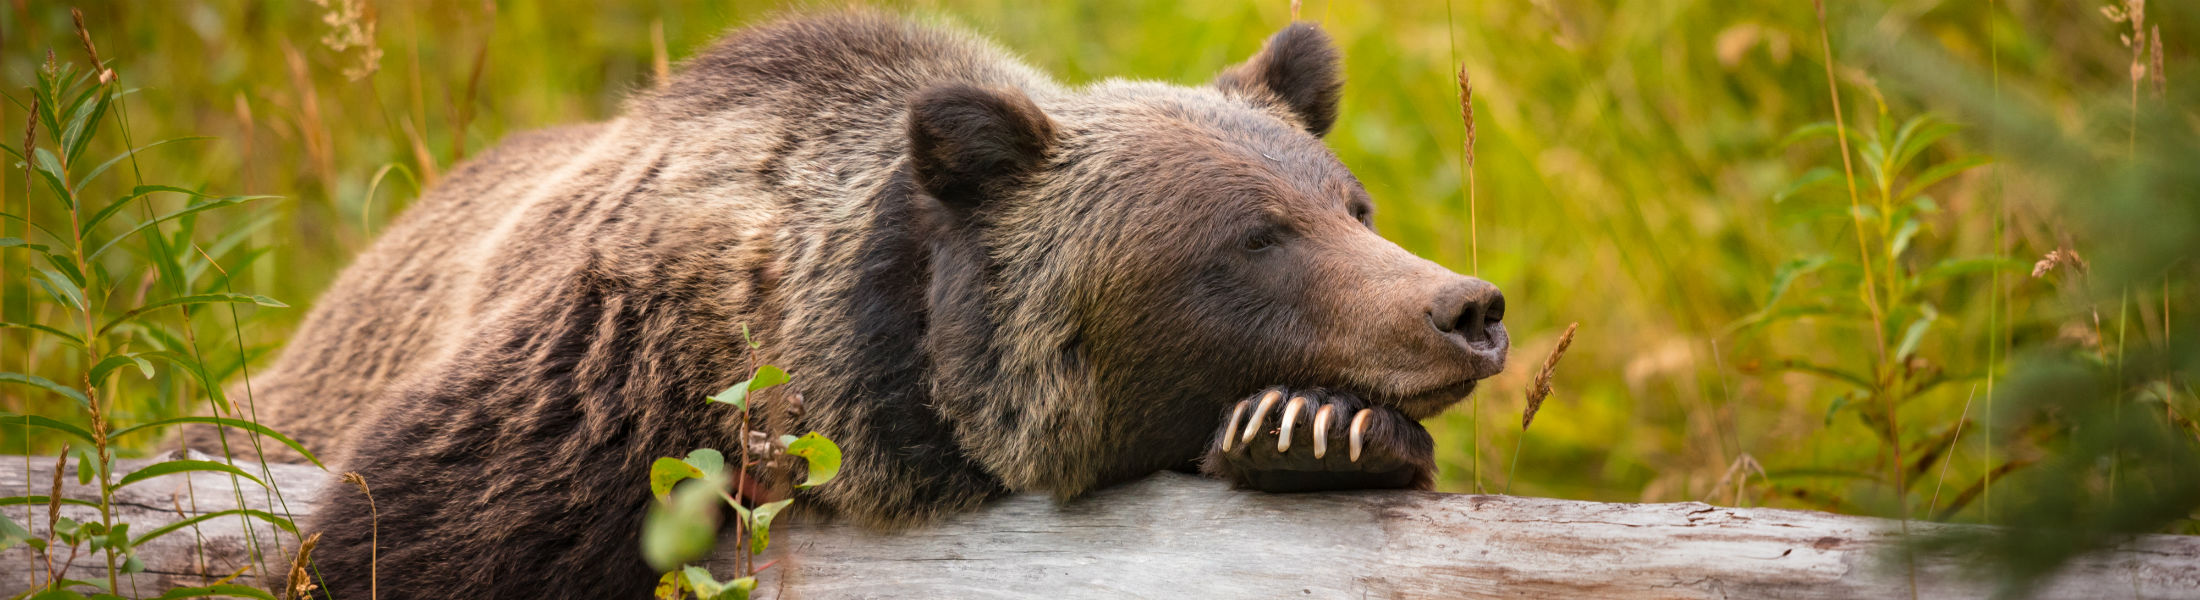 Grizzly bear taking a rest in Banff National Park Alberta Canada